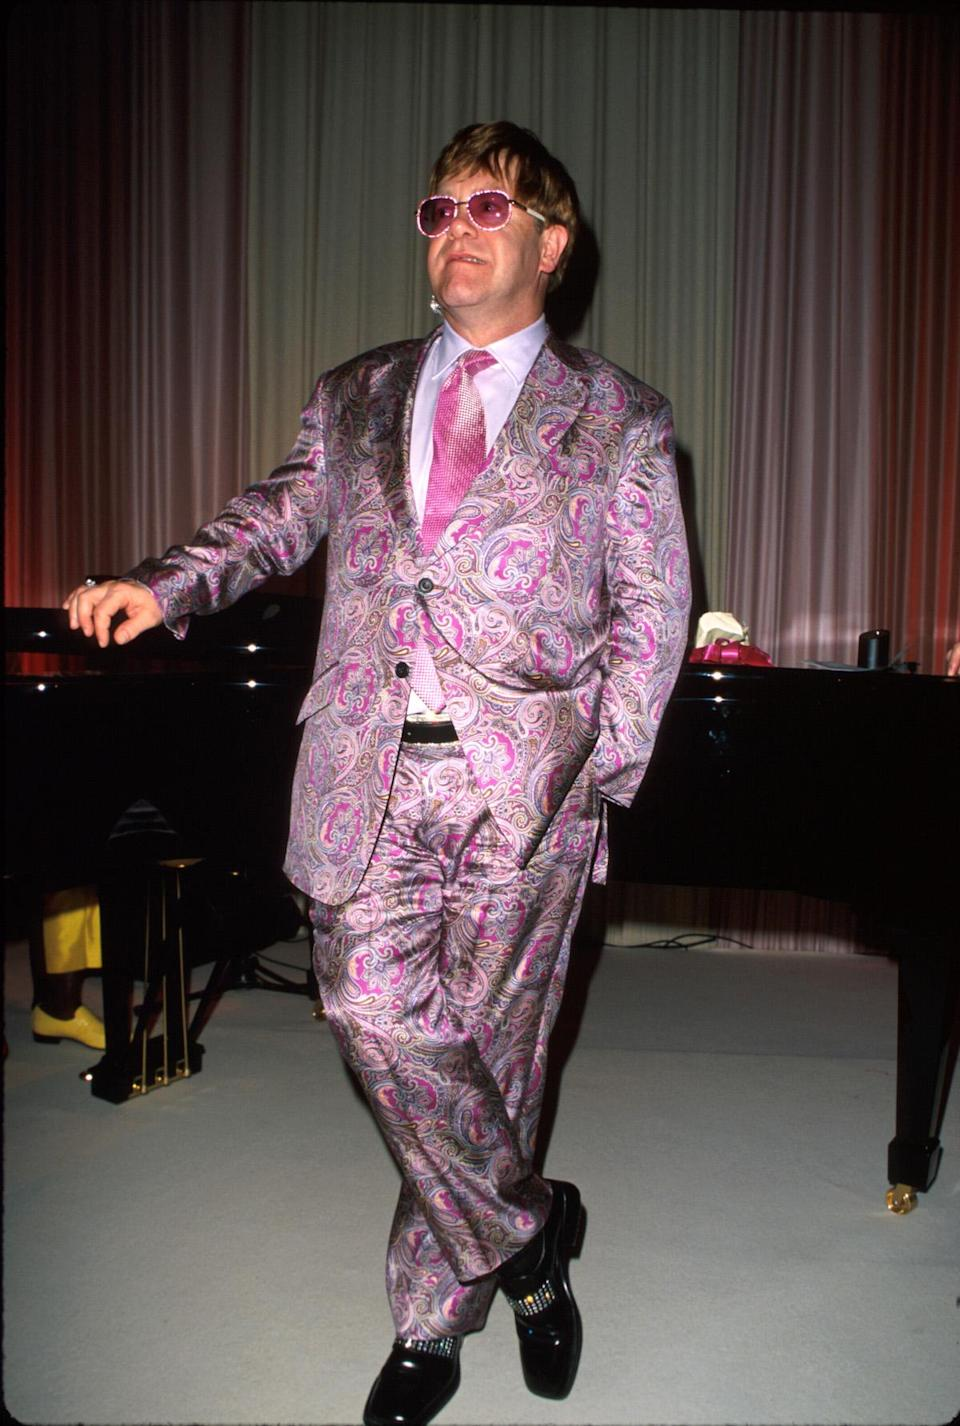 <p>Elton John in a pink-and-purple paisley silk suit with a bright pink tie in 2000. (Photo: Getty Images) </p>